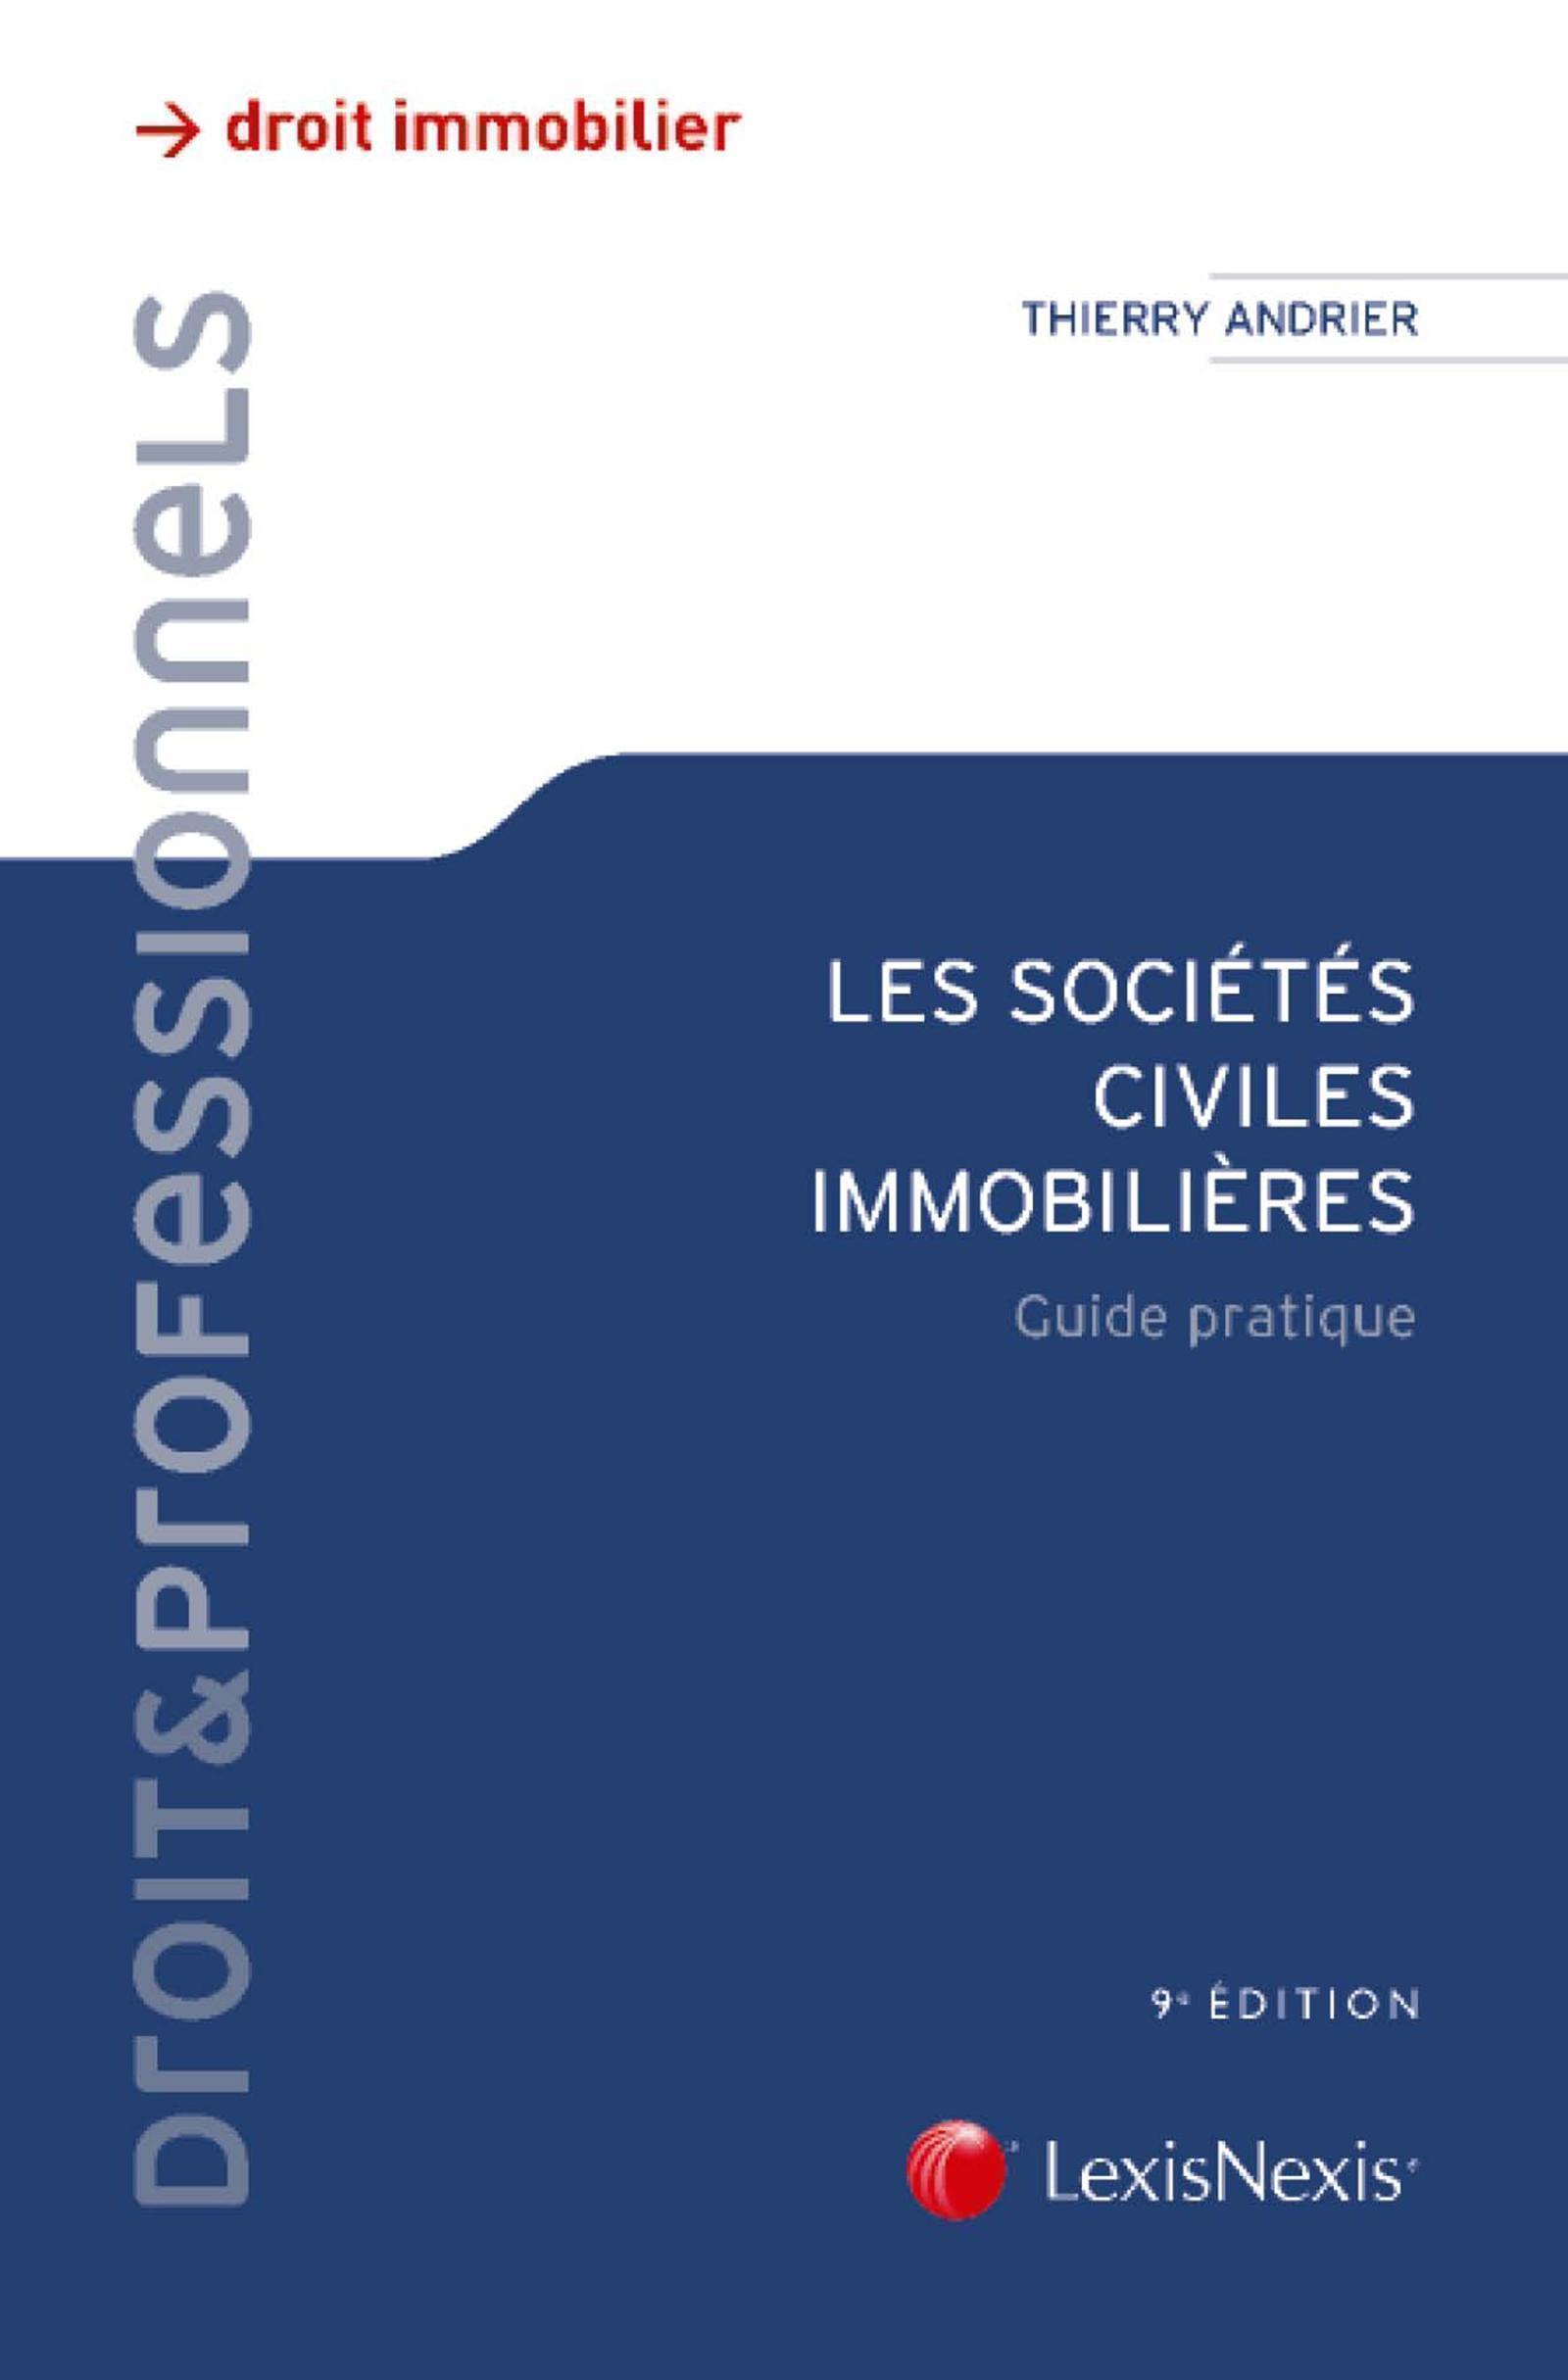 LES SOCIETES CIVILES IMMOBILIERES - GUIDE PRATIQUE